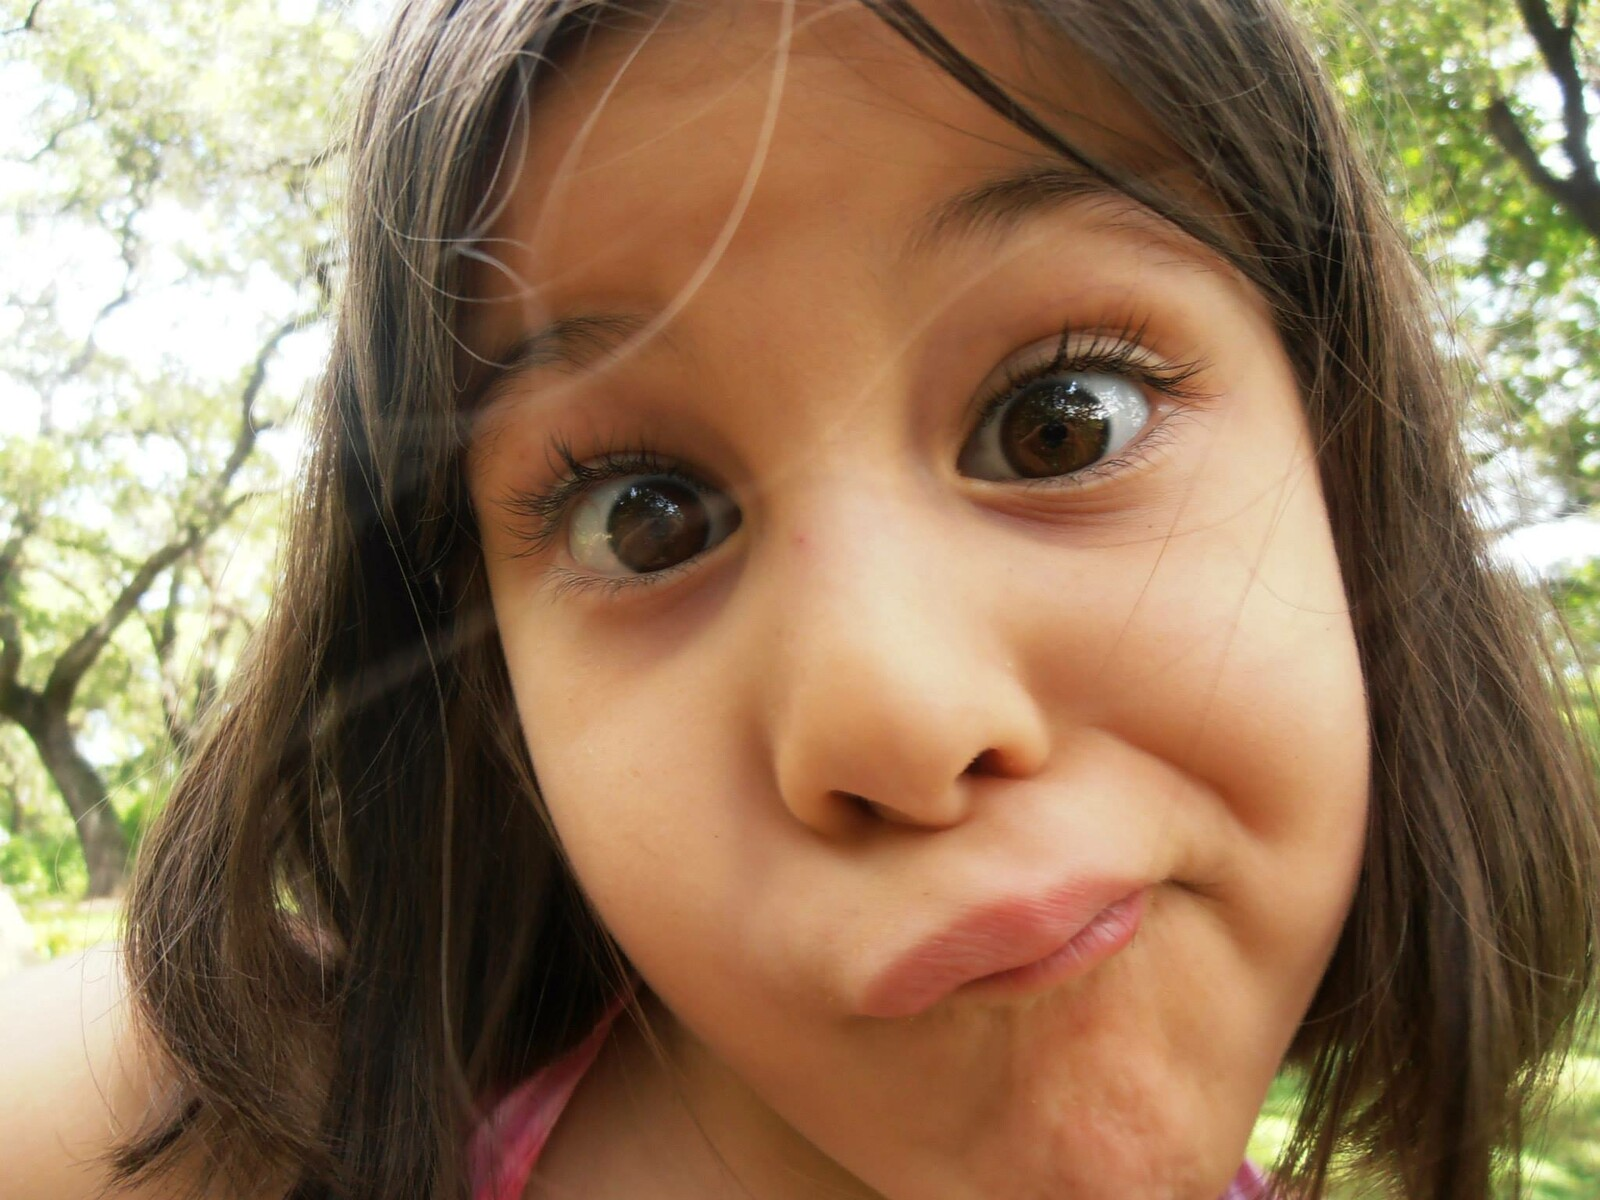 Original Photograph of my oldest Daughter Lila when she was about 5